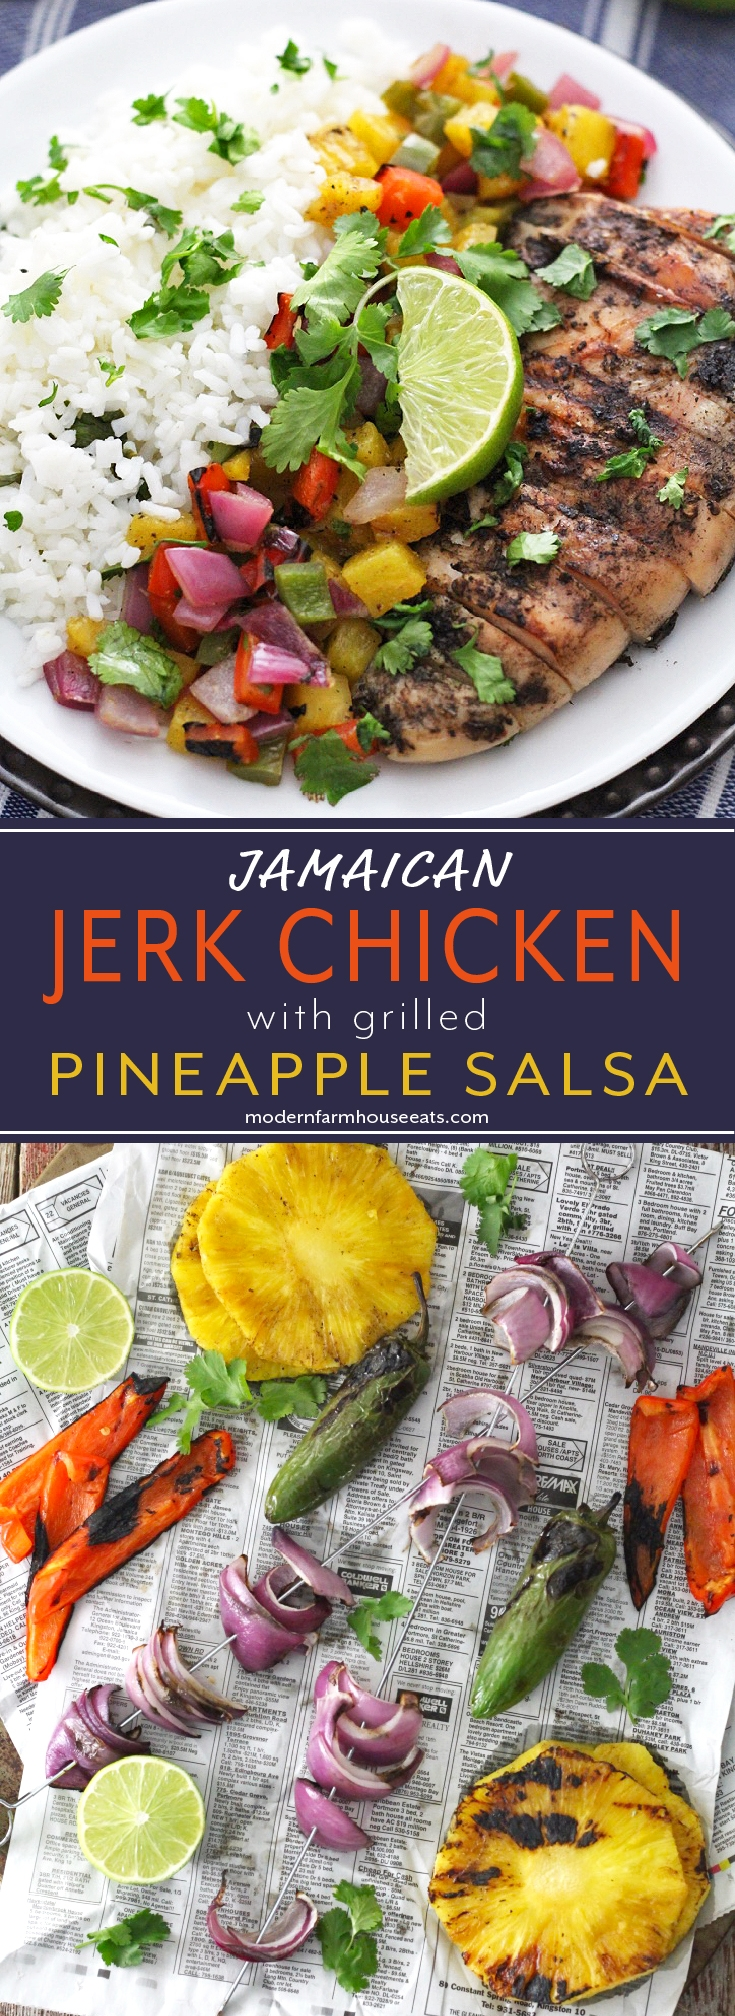 Island inspired Jamaican Jerk Chicken combines perfectly with grilled pineapple salsa and cilantro lime rice for a healthy and tasty dinner.